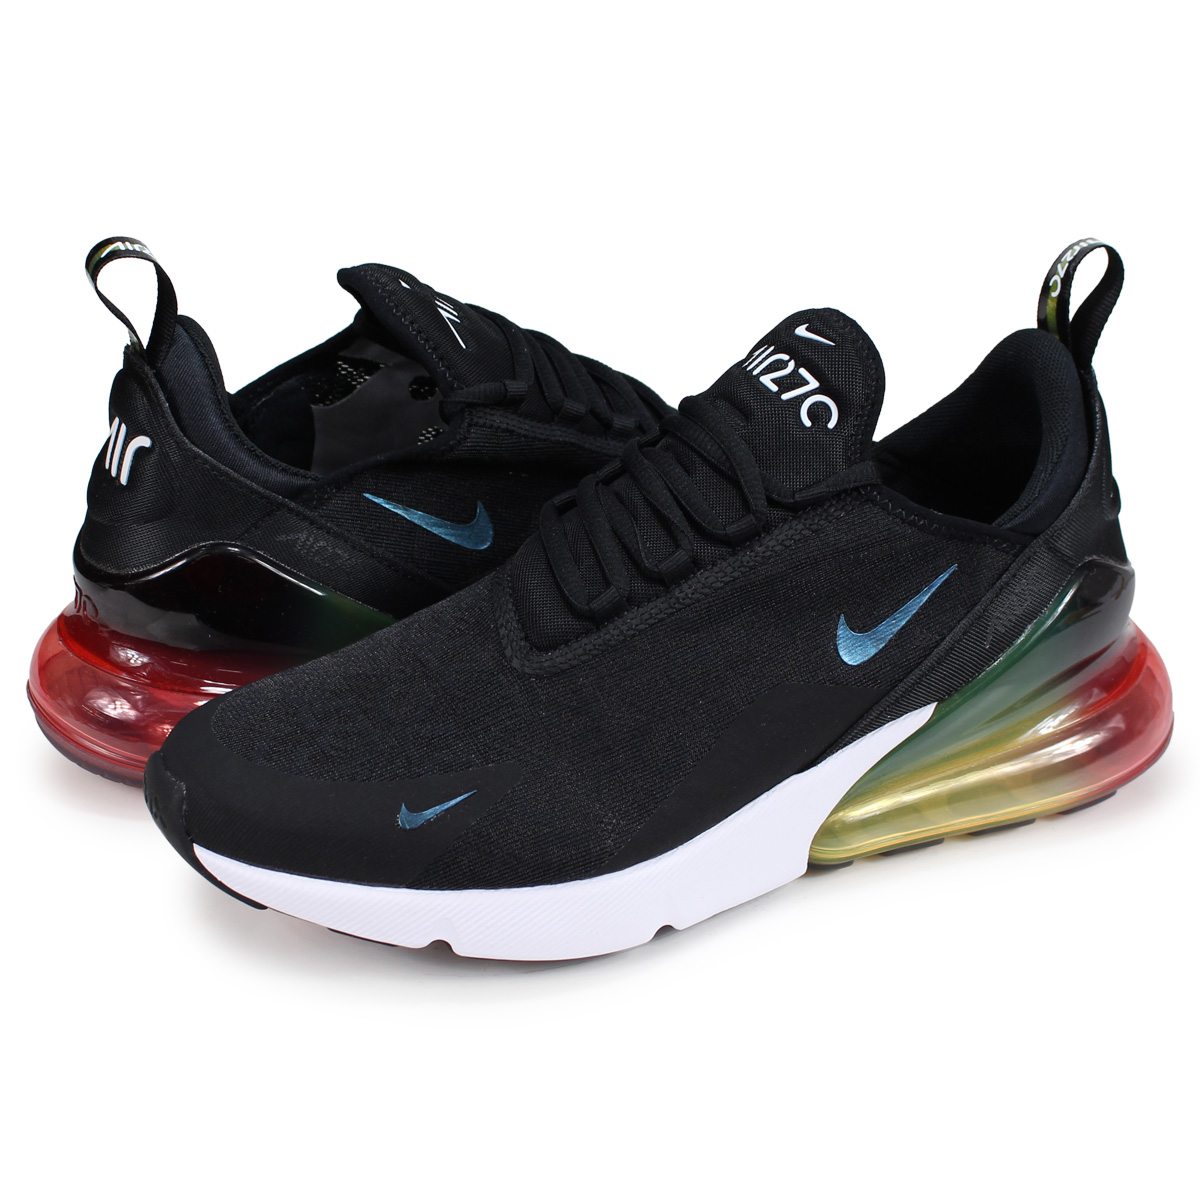 hot sale online cb54d 7dd73 Nike NIKE Air Max 270 sneakers men AIR MAX 270 SE black AQ9164-003 [193]